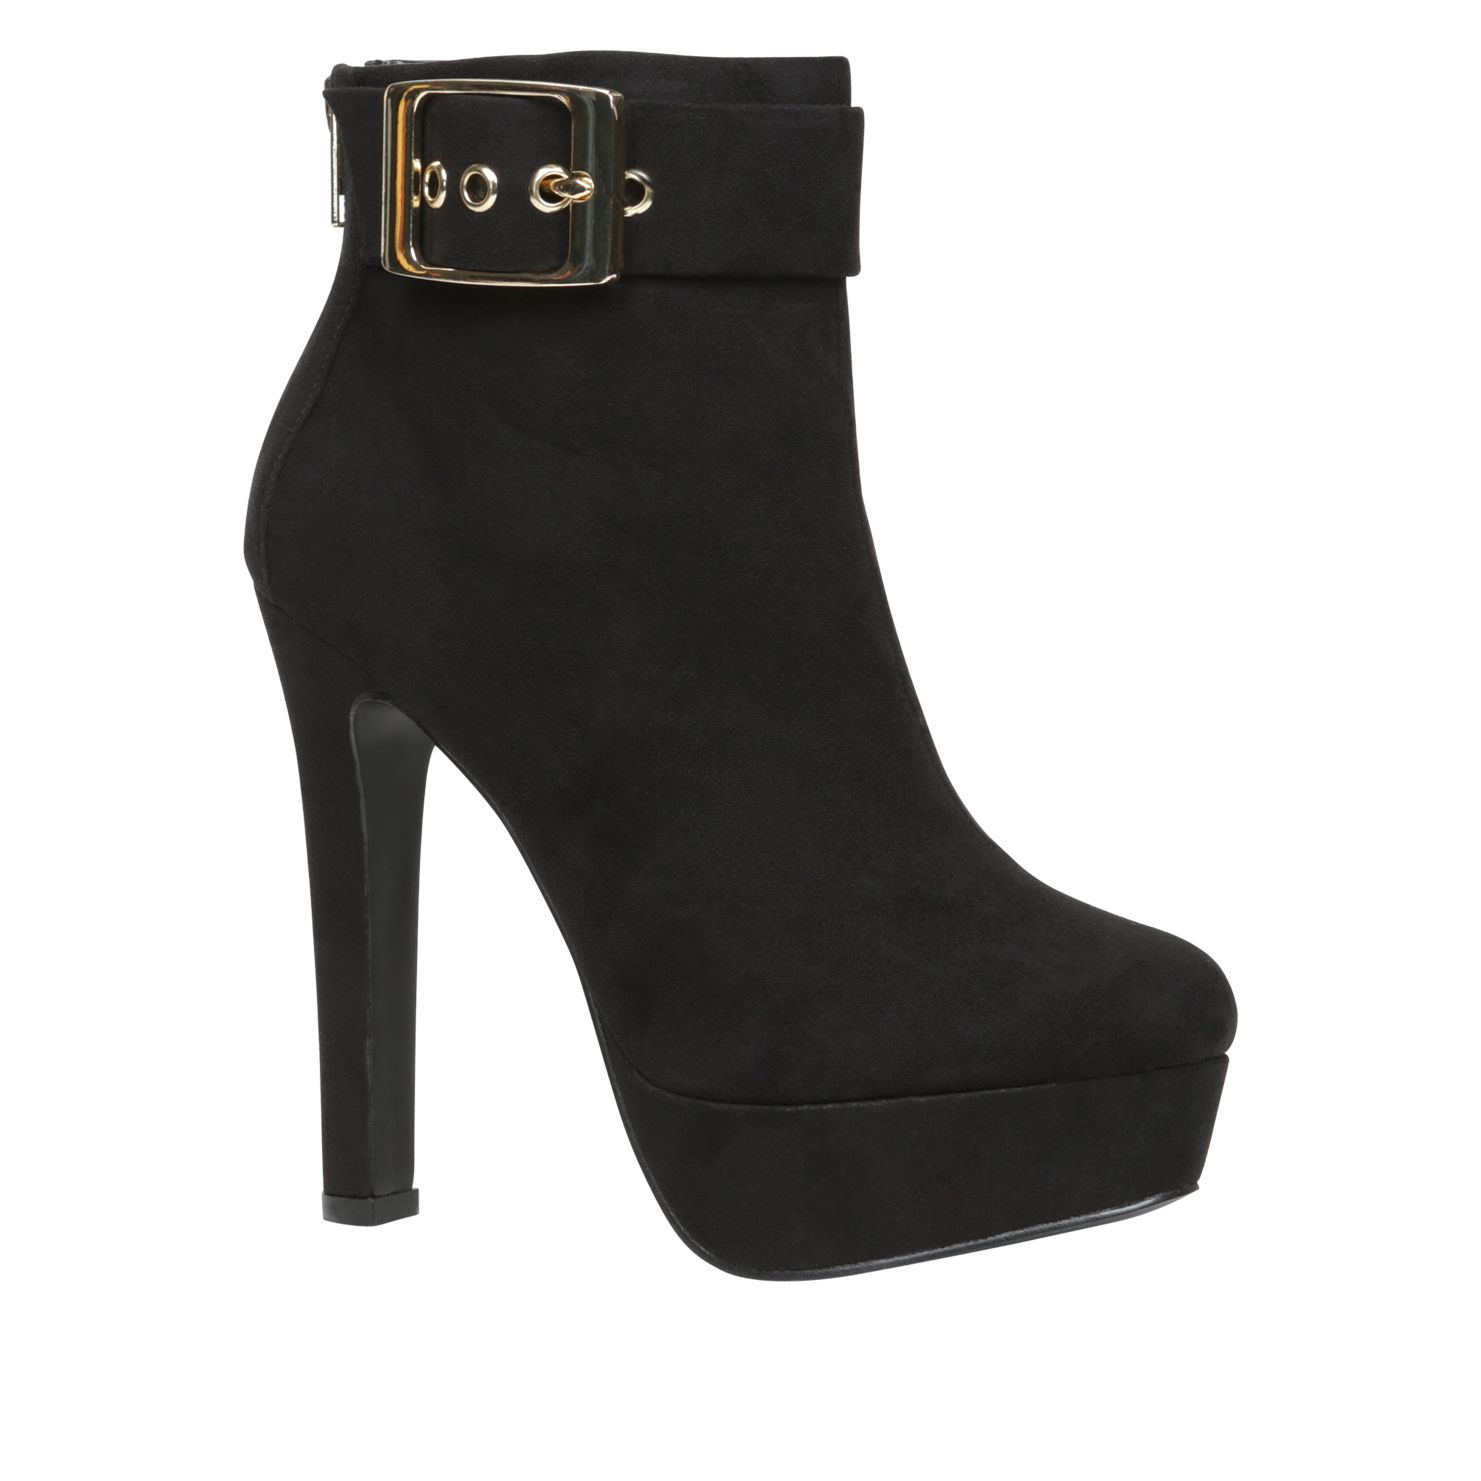 Disantis platform high heel boots